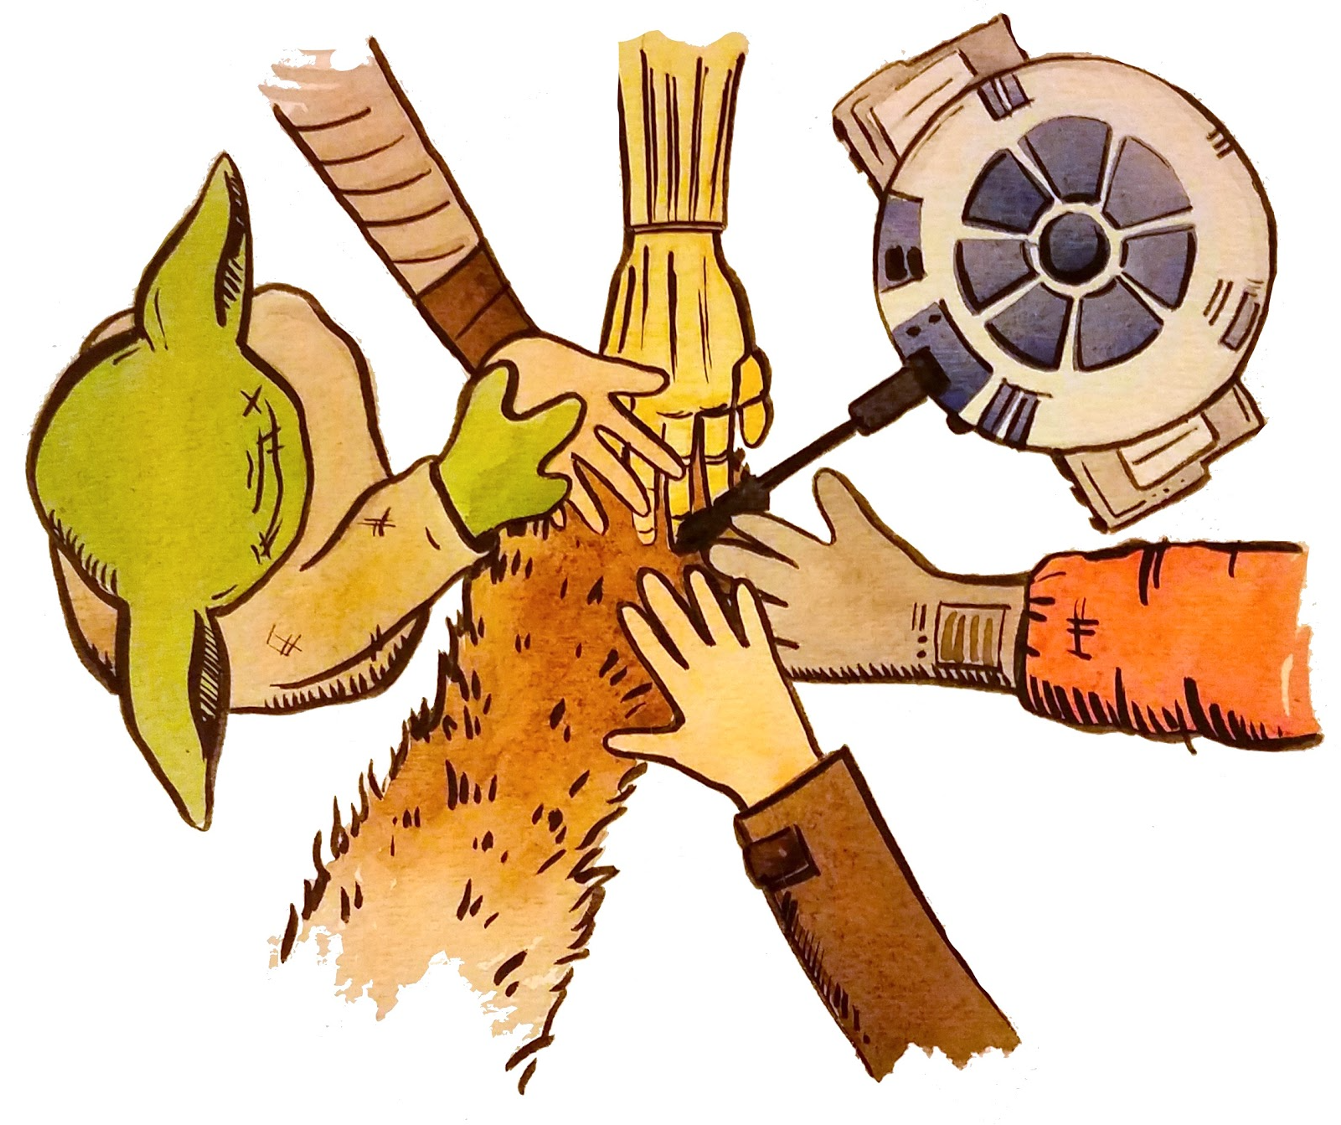 Overhead view of cartoon-likeness Star Wars characters putting their hands together as a team.